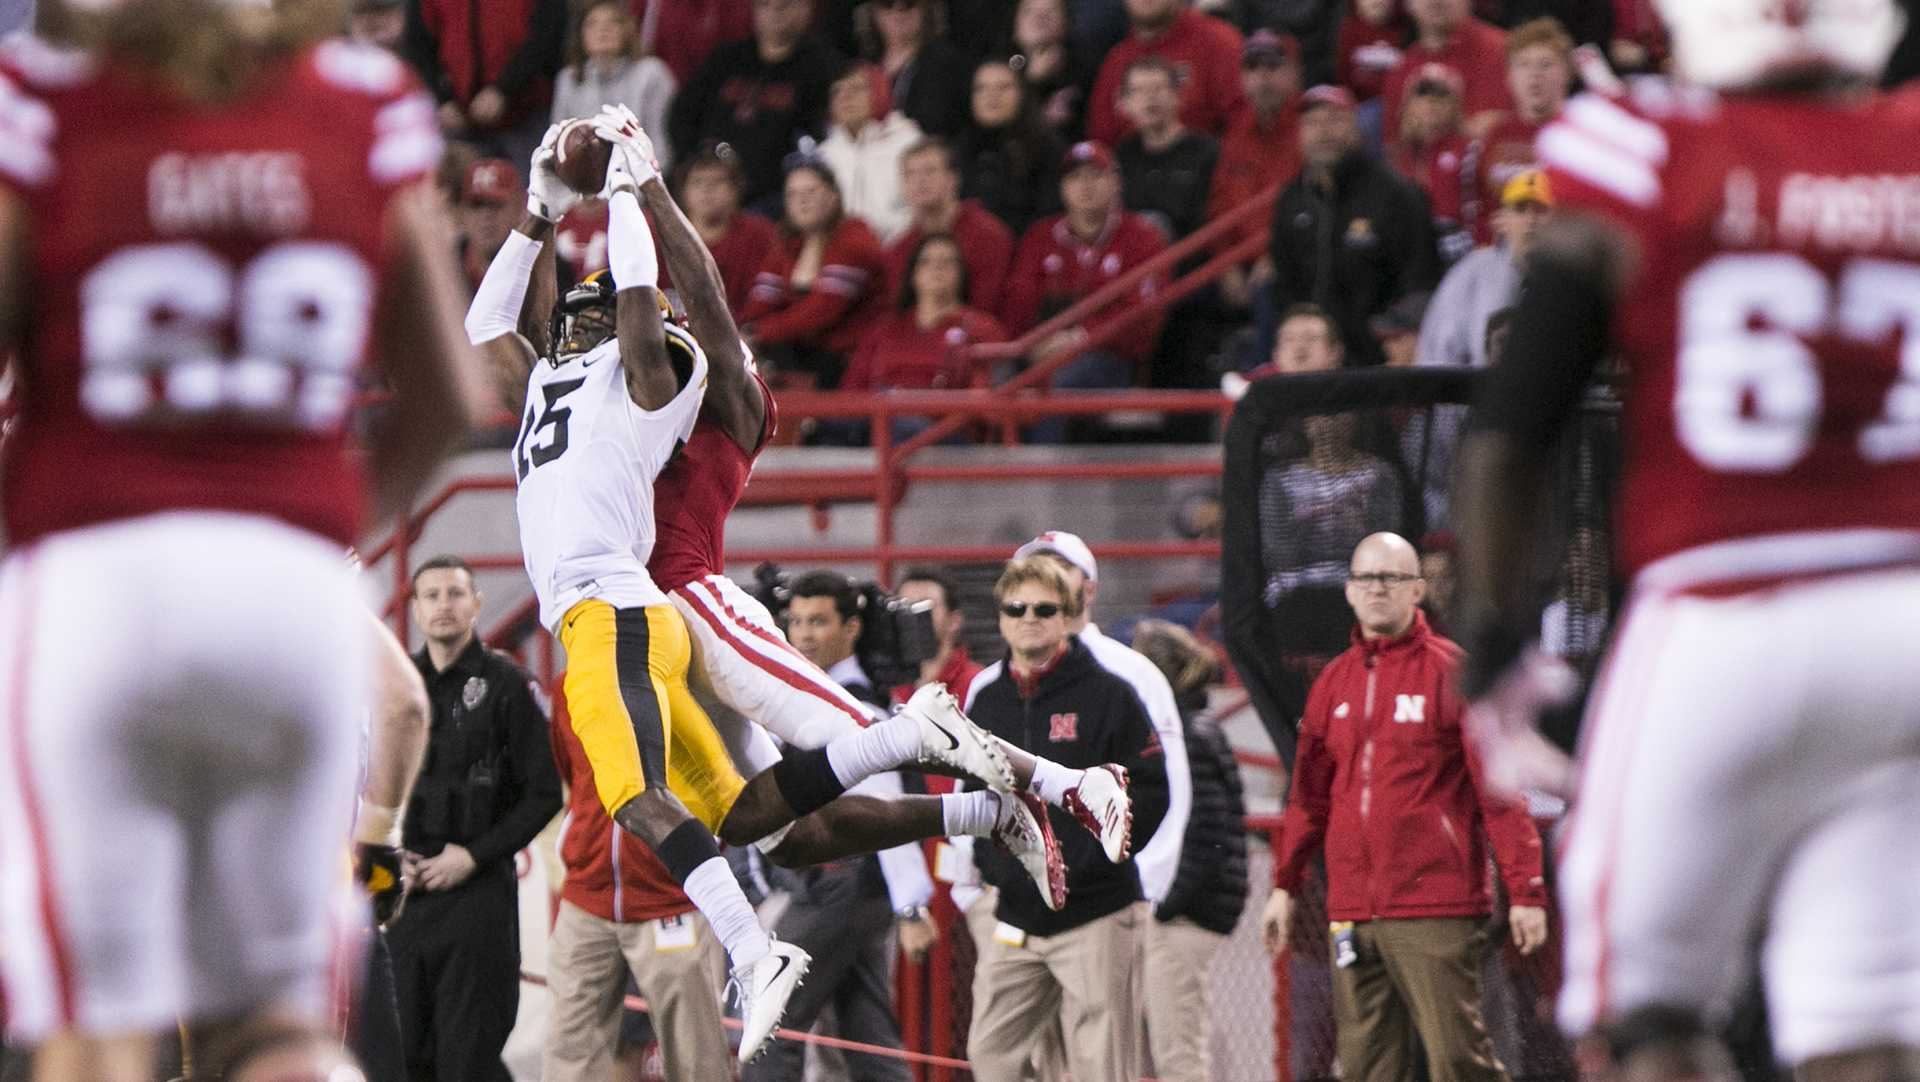 Iowa cornerback Josh Jackson attempts to intercept a pass during the Iowa/Nebraska football game in Memorial Stadium on Friday, Nov. 24, 2017. The Hawkeyes defeated the Cornhuskers, 56-14. (Joseph Cress/The Daily Iowan)